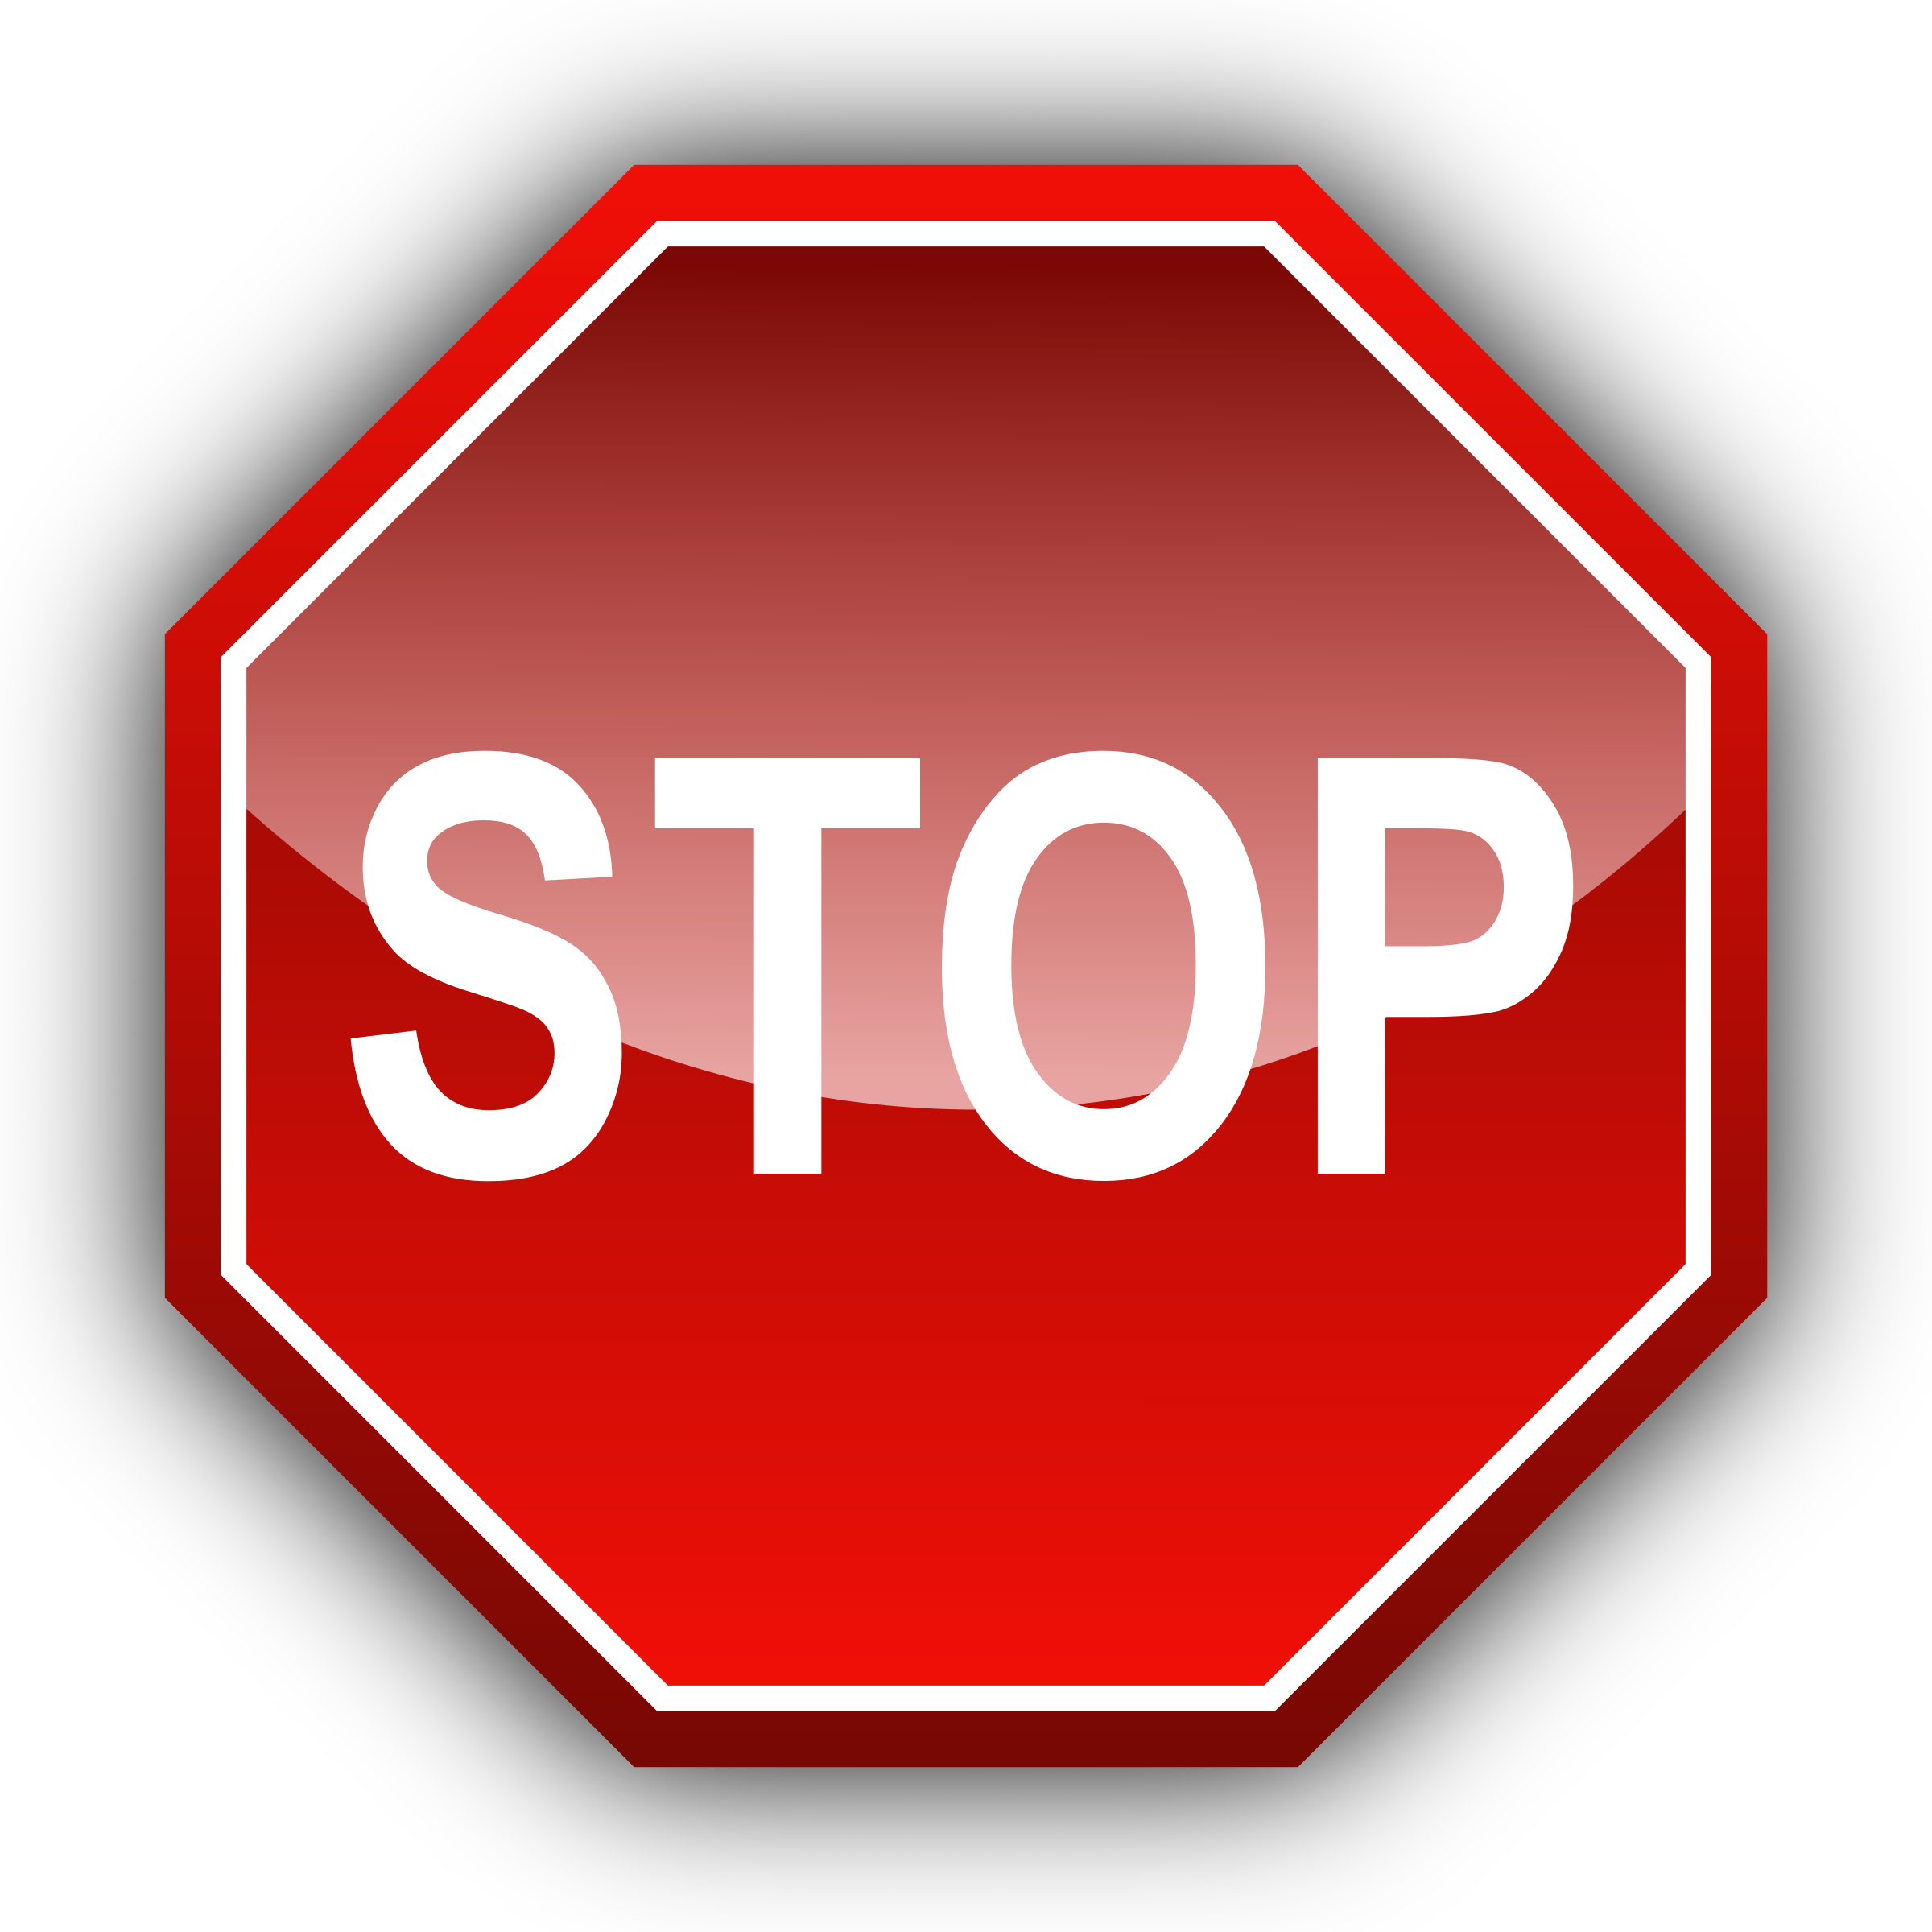 Stop sign icon png. Signal icons free and